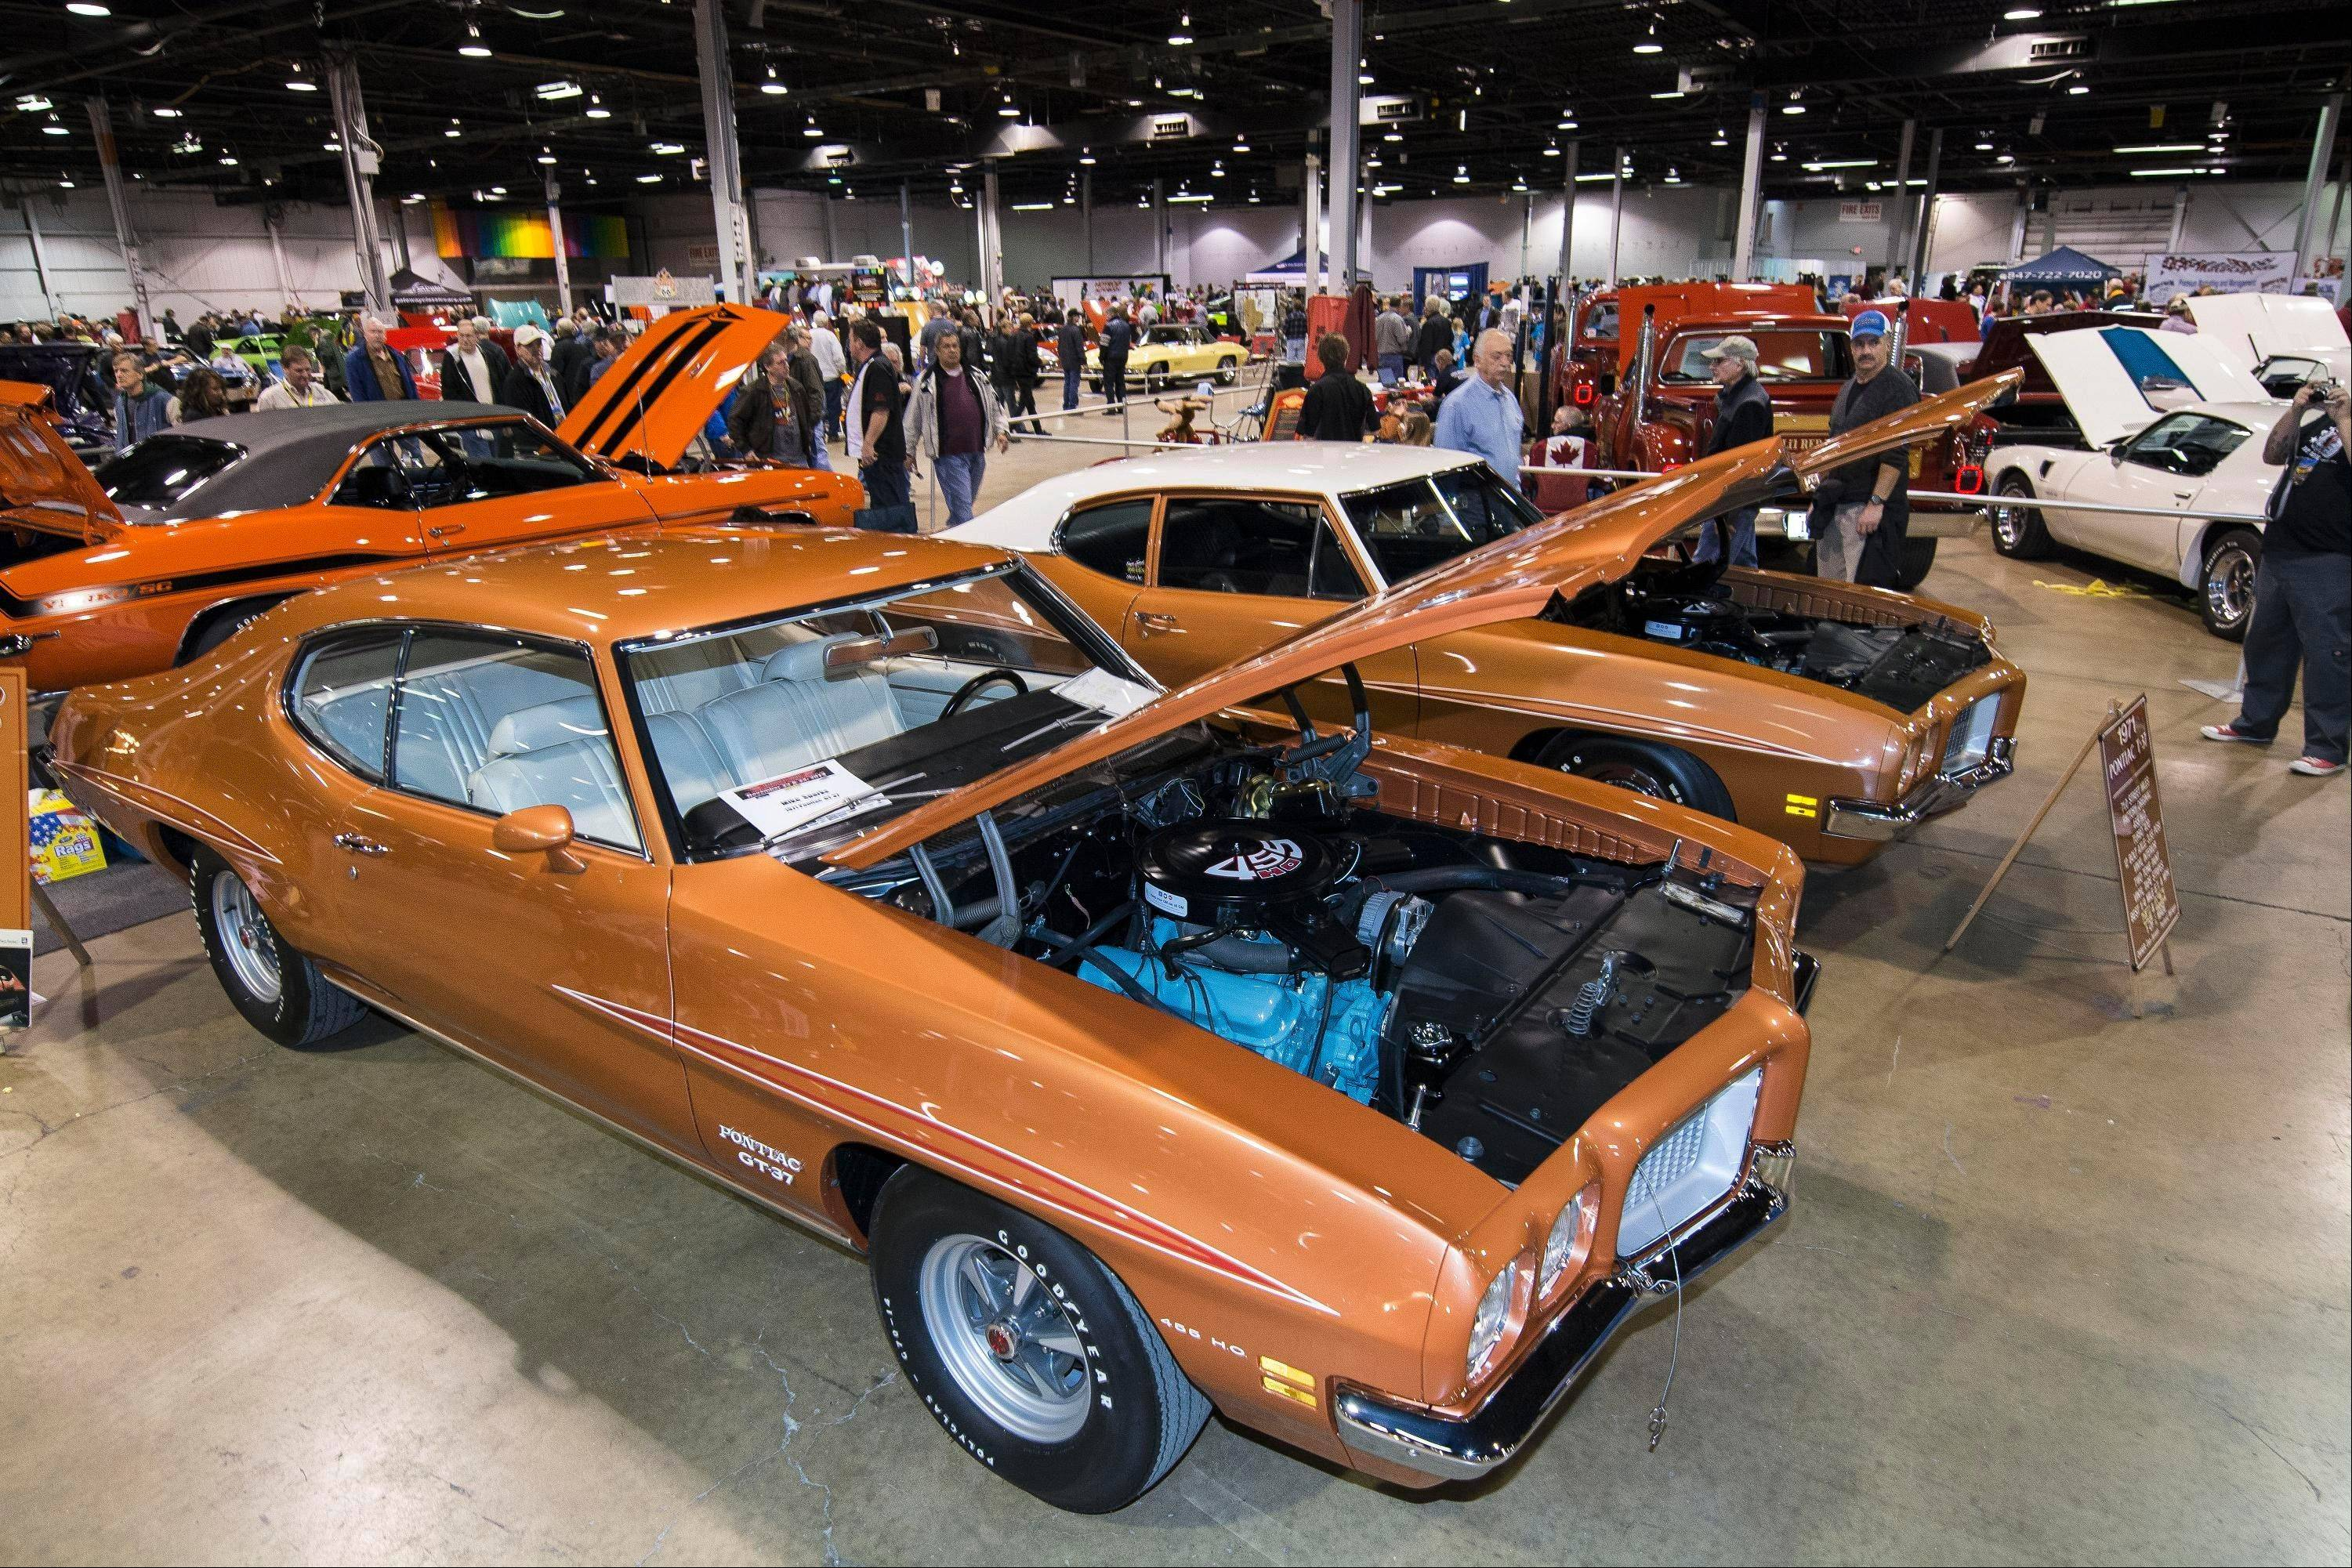 More than 500 owners of top quality cars from around the country descended on Rosemont last weekend for the 2013 Muscle Car and Corvette Nationals.